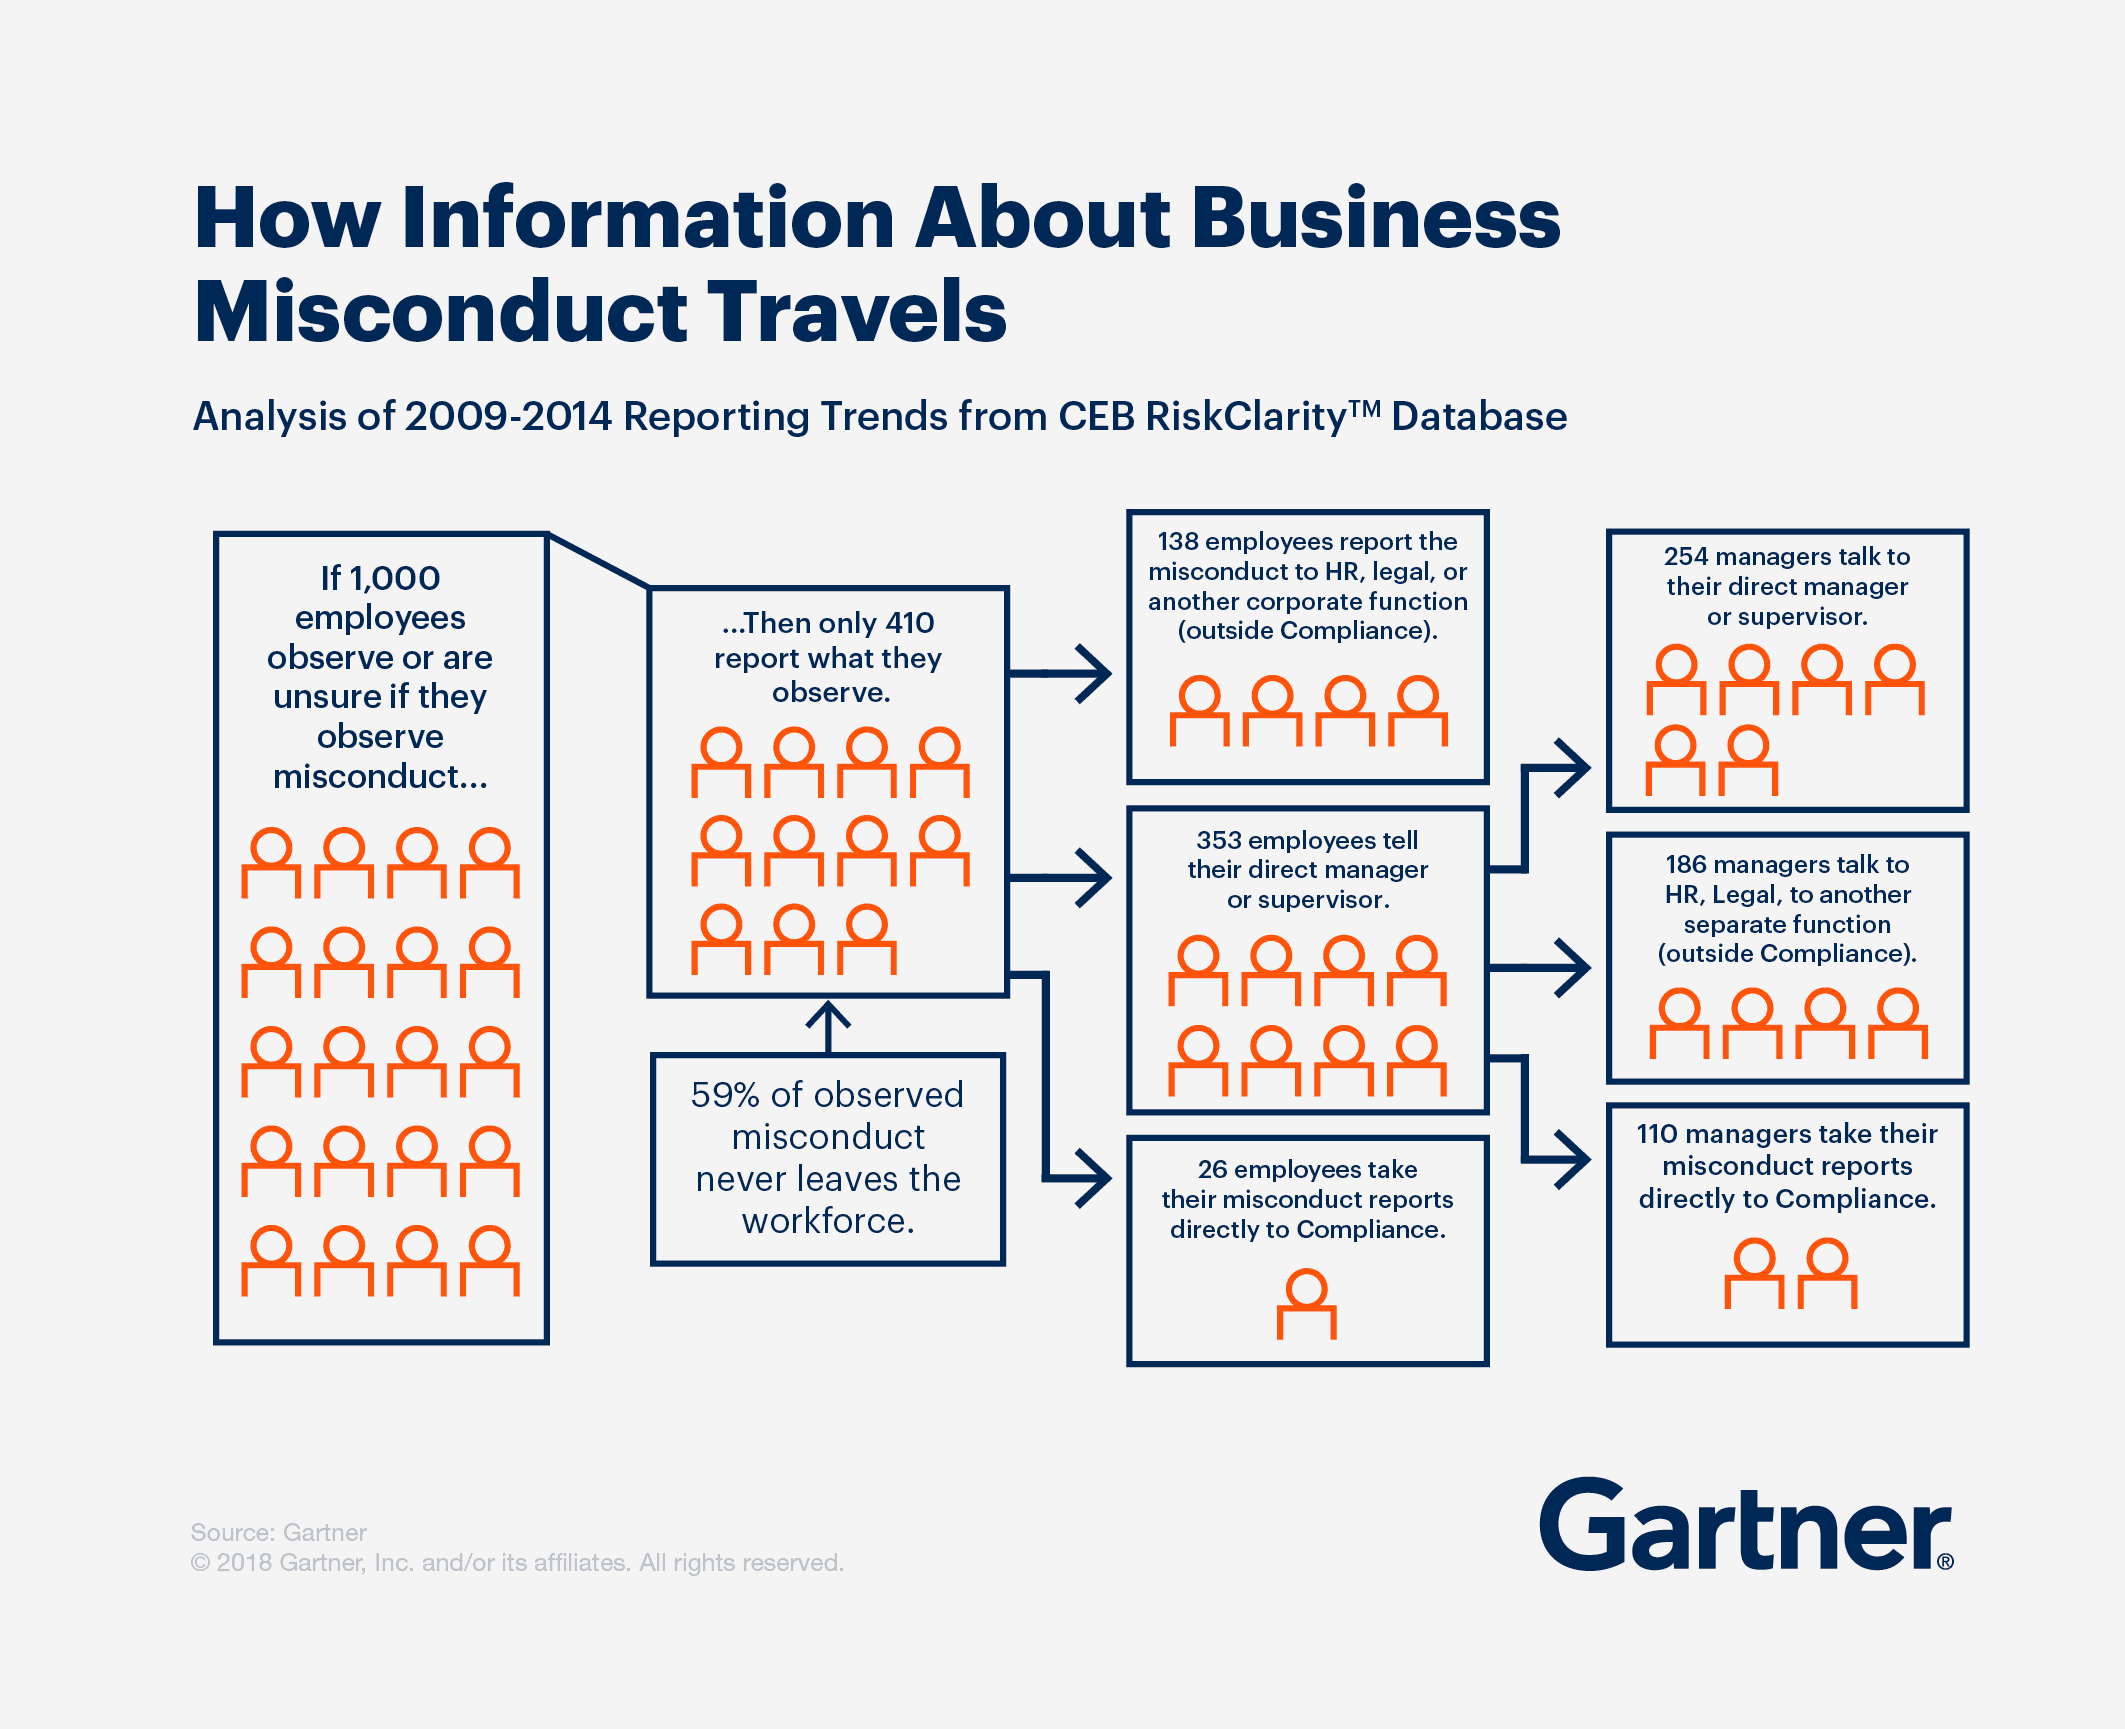 How information about business misconducts travels